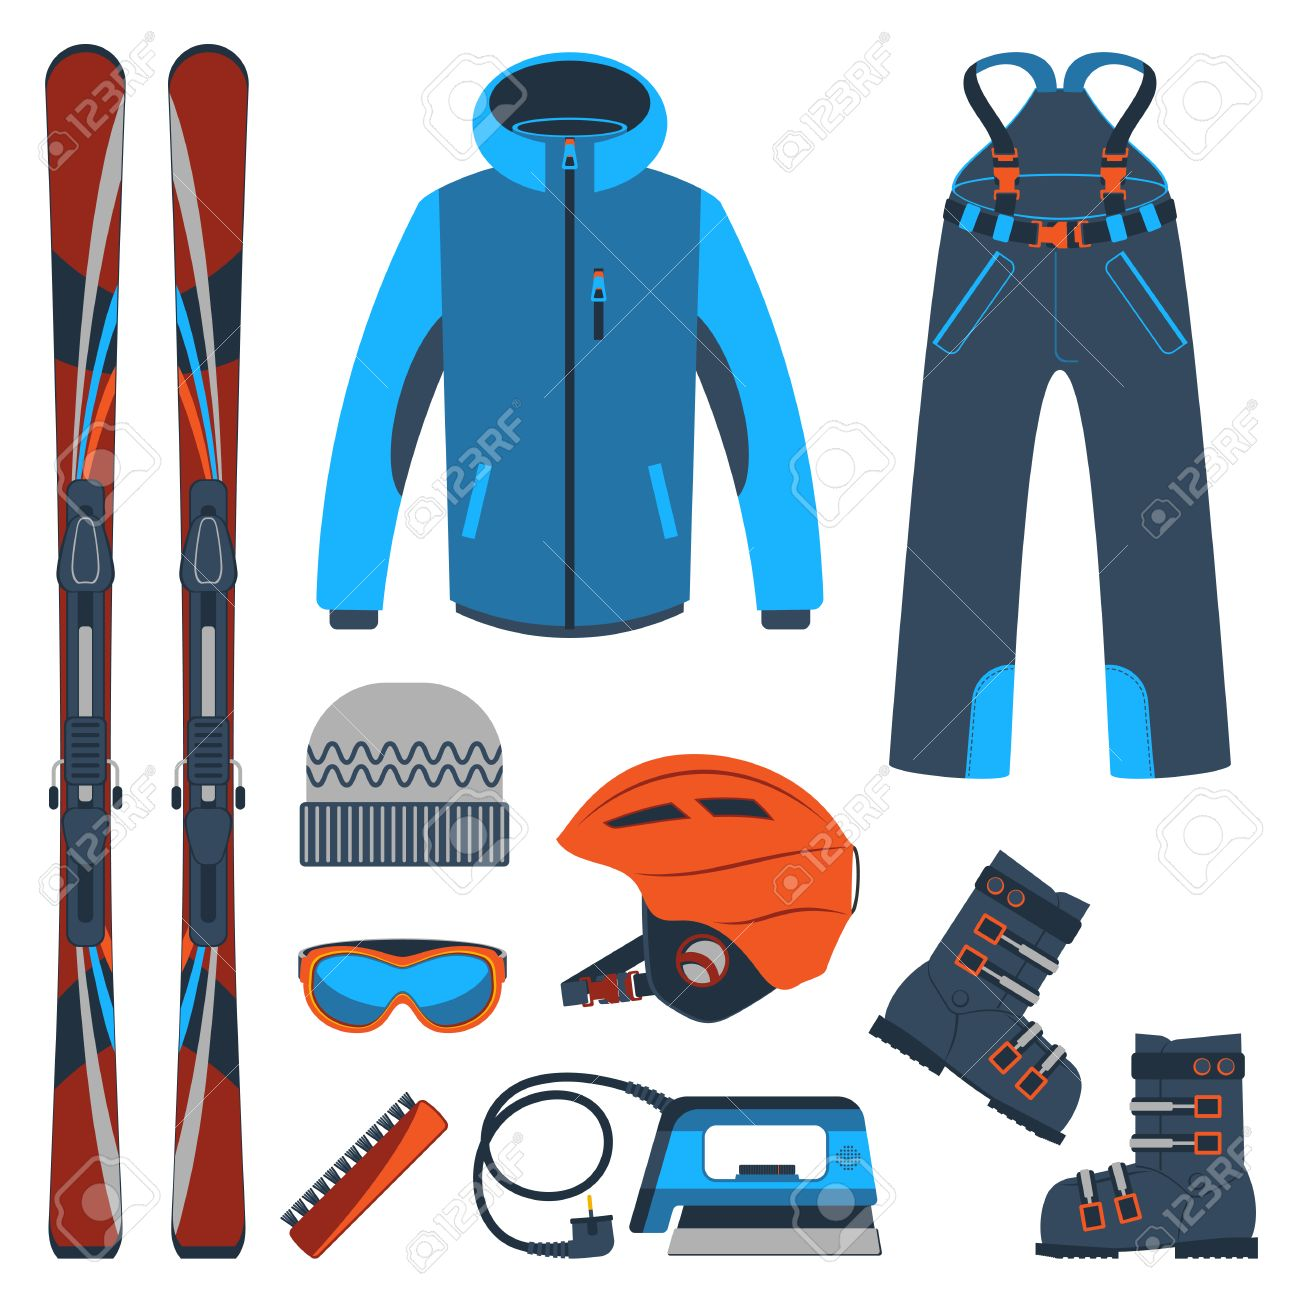 https://previews.123rf.com/images/studioworkstock/studioworkstock1601/studioworkstock160100067/50081202-ski-equipment-or-ski-kit-extreme-winter-sports-ski-goggles-boots-and-other-ski-clothes-vector-set-of.jpg